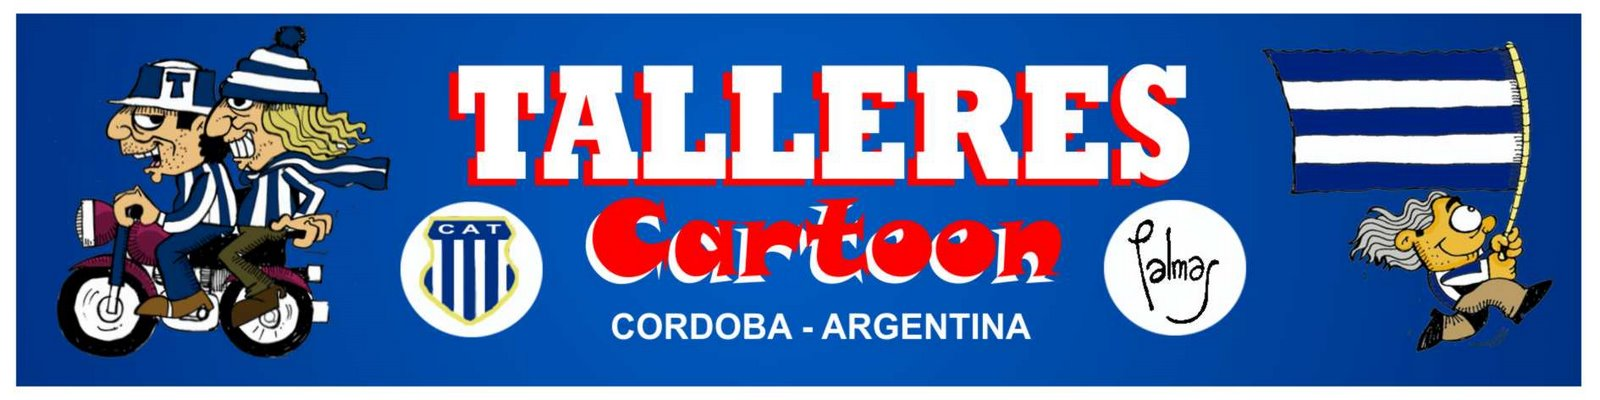 Talleres Cartoon